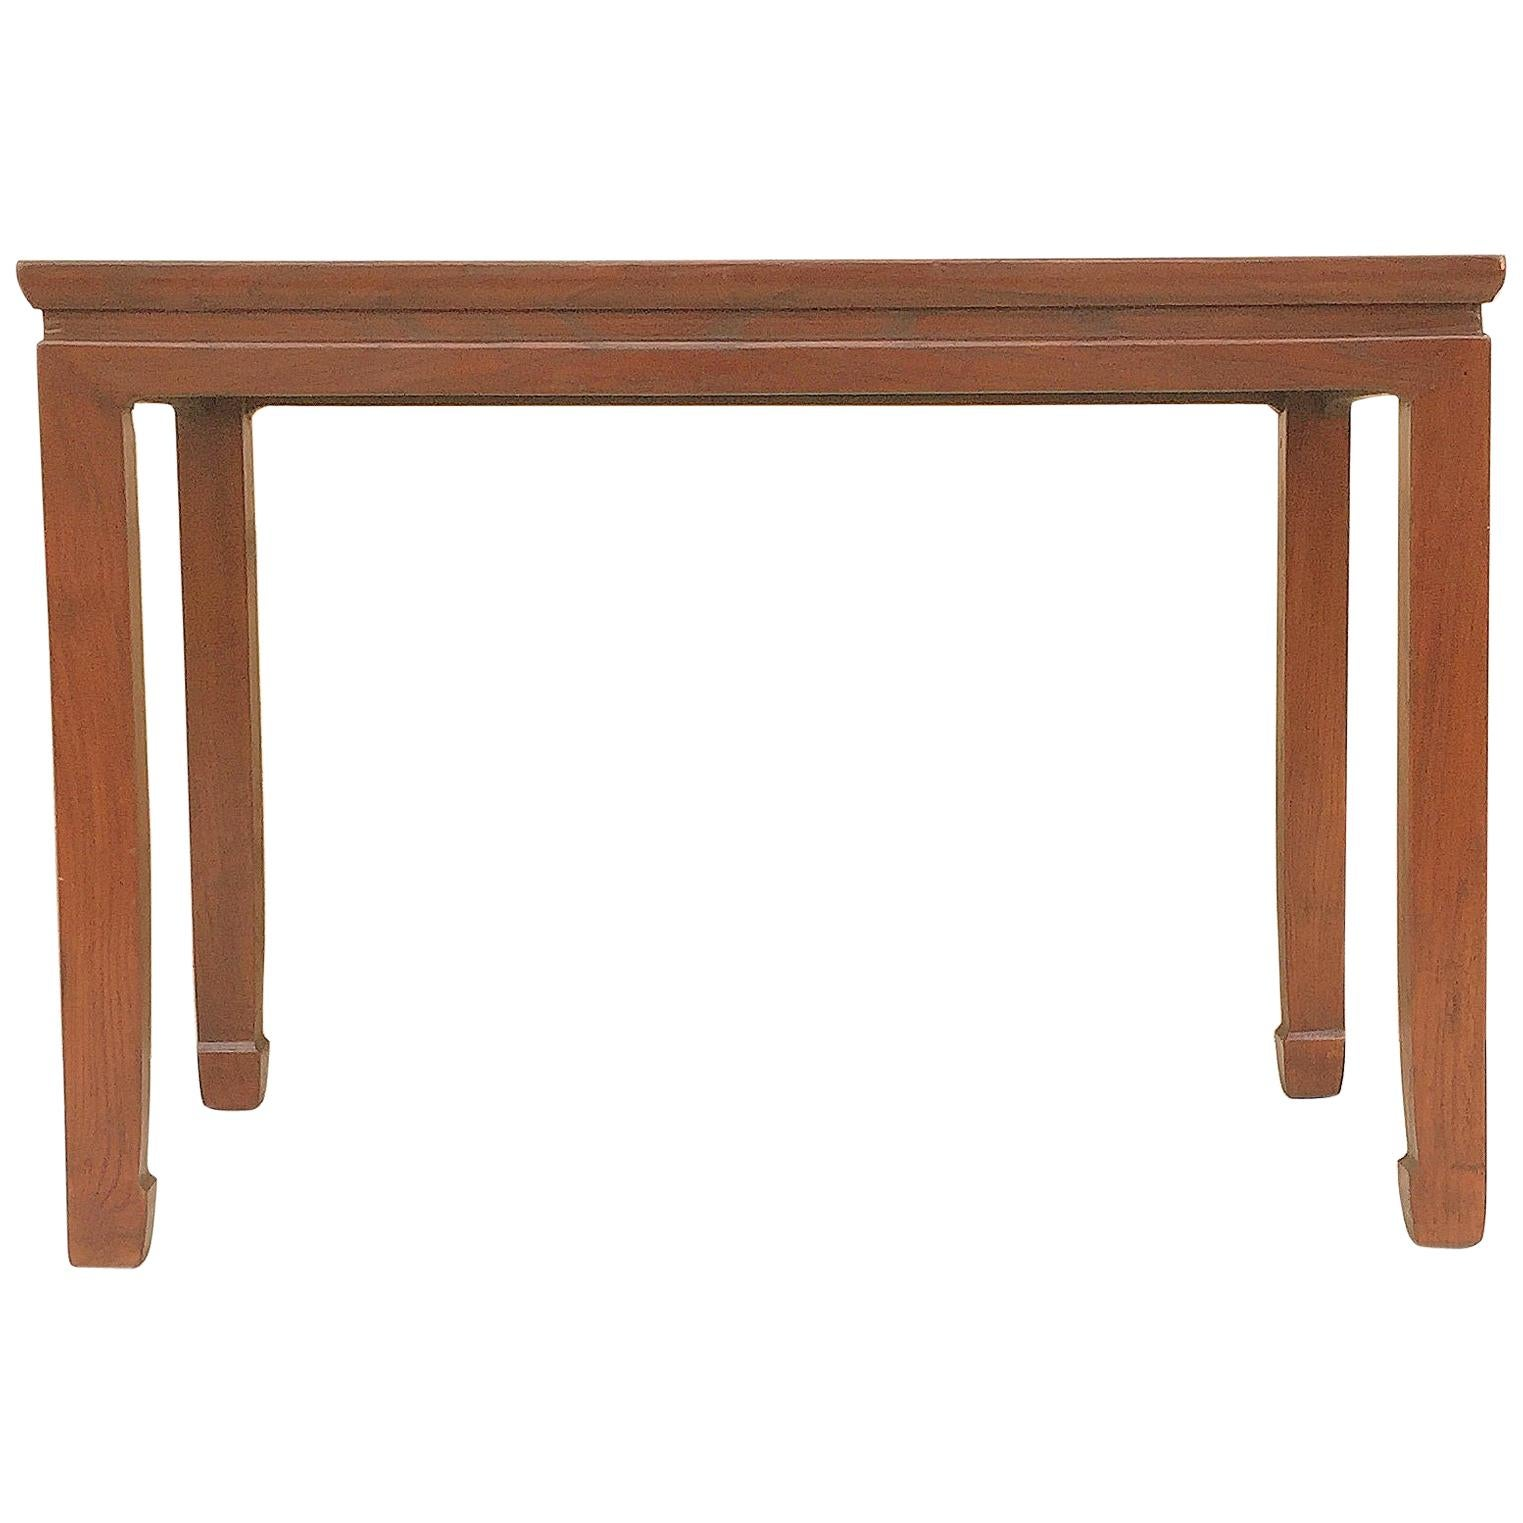 Elmwood Console Table or Desk